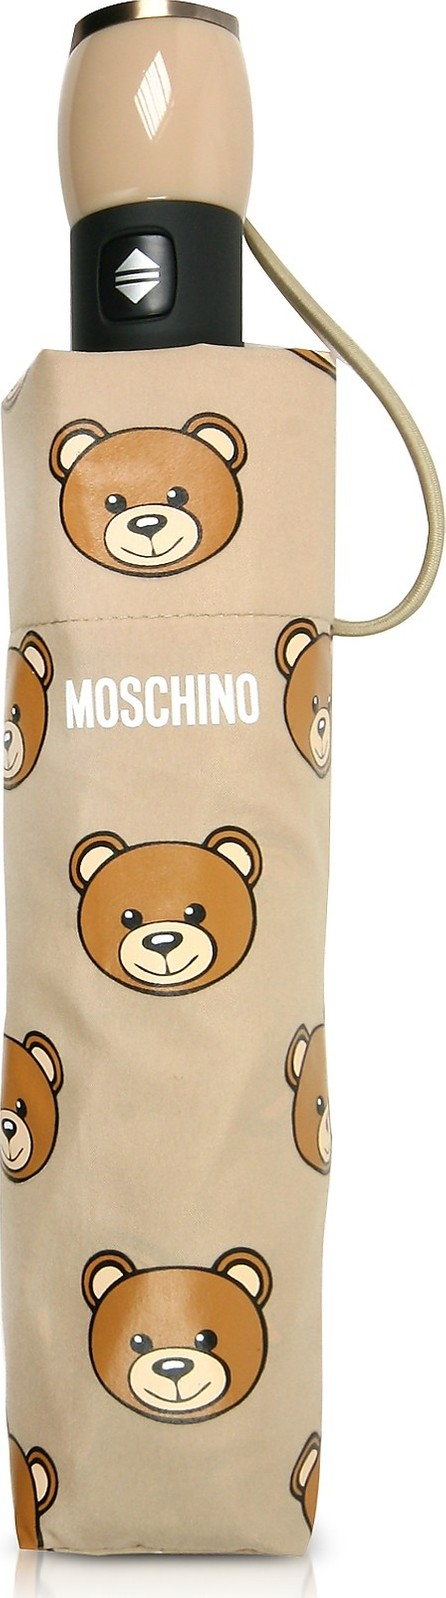 Moschino Teddy Heads Dark Beige Mini Umbrella